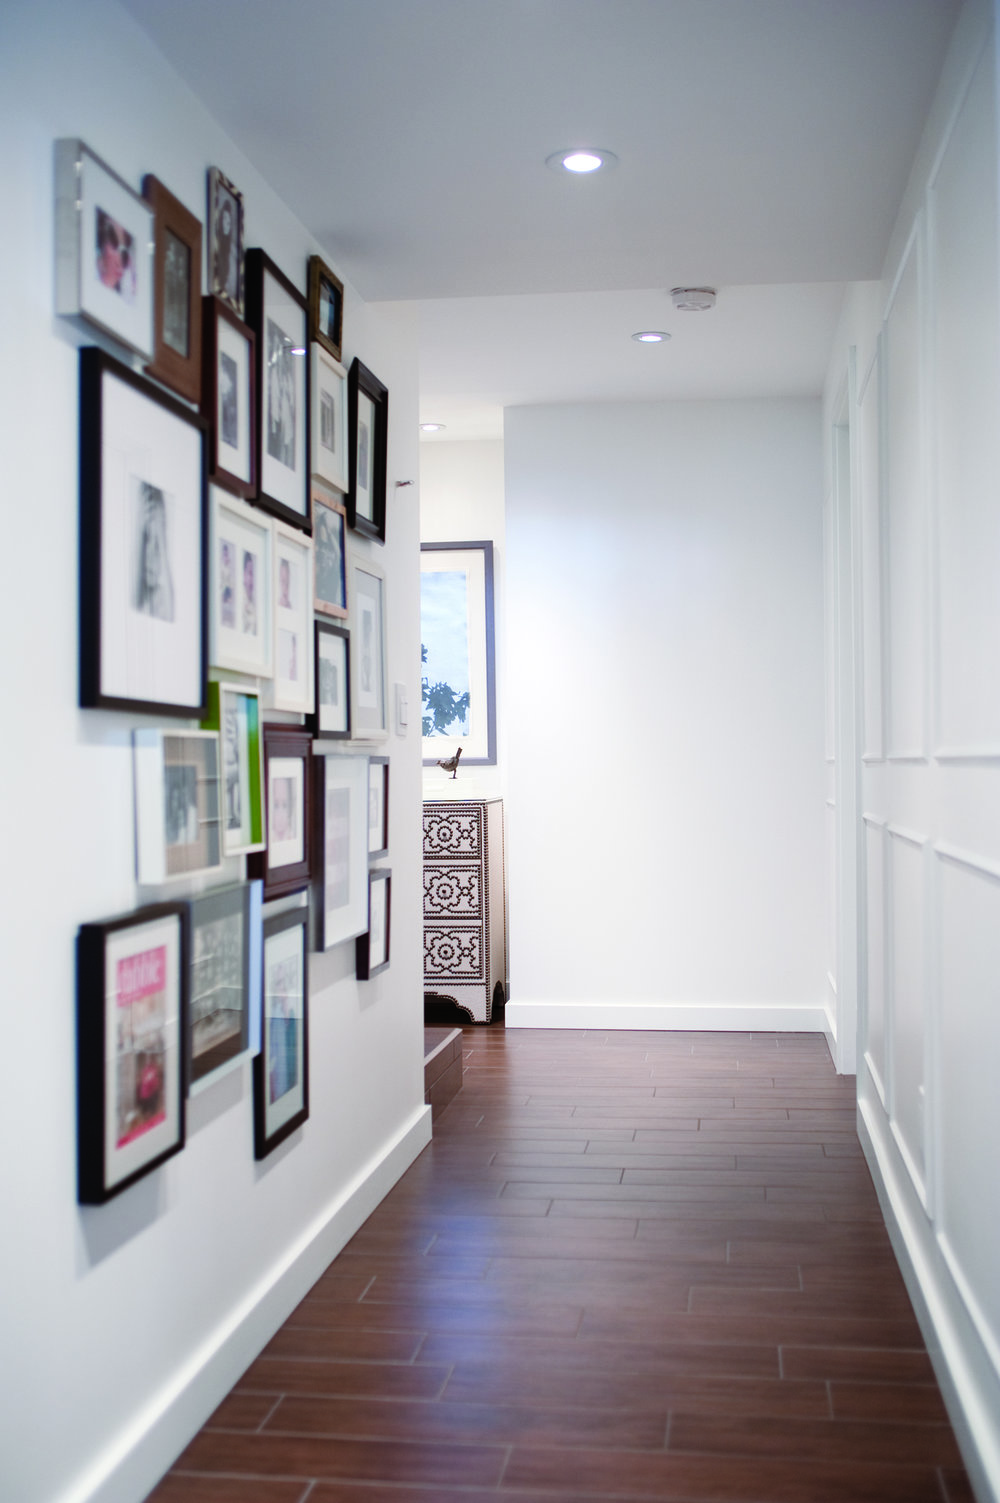 Hallway Gallery Wall, Nyla Free Designs, Calgary Interior Designer, Photo: Jared Sych